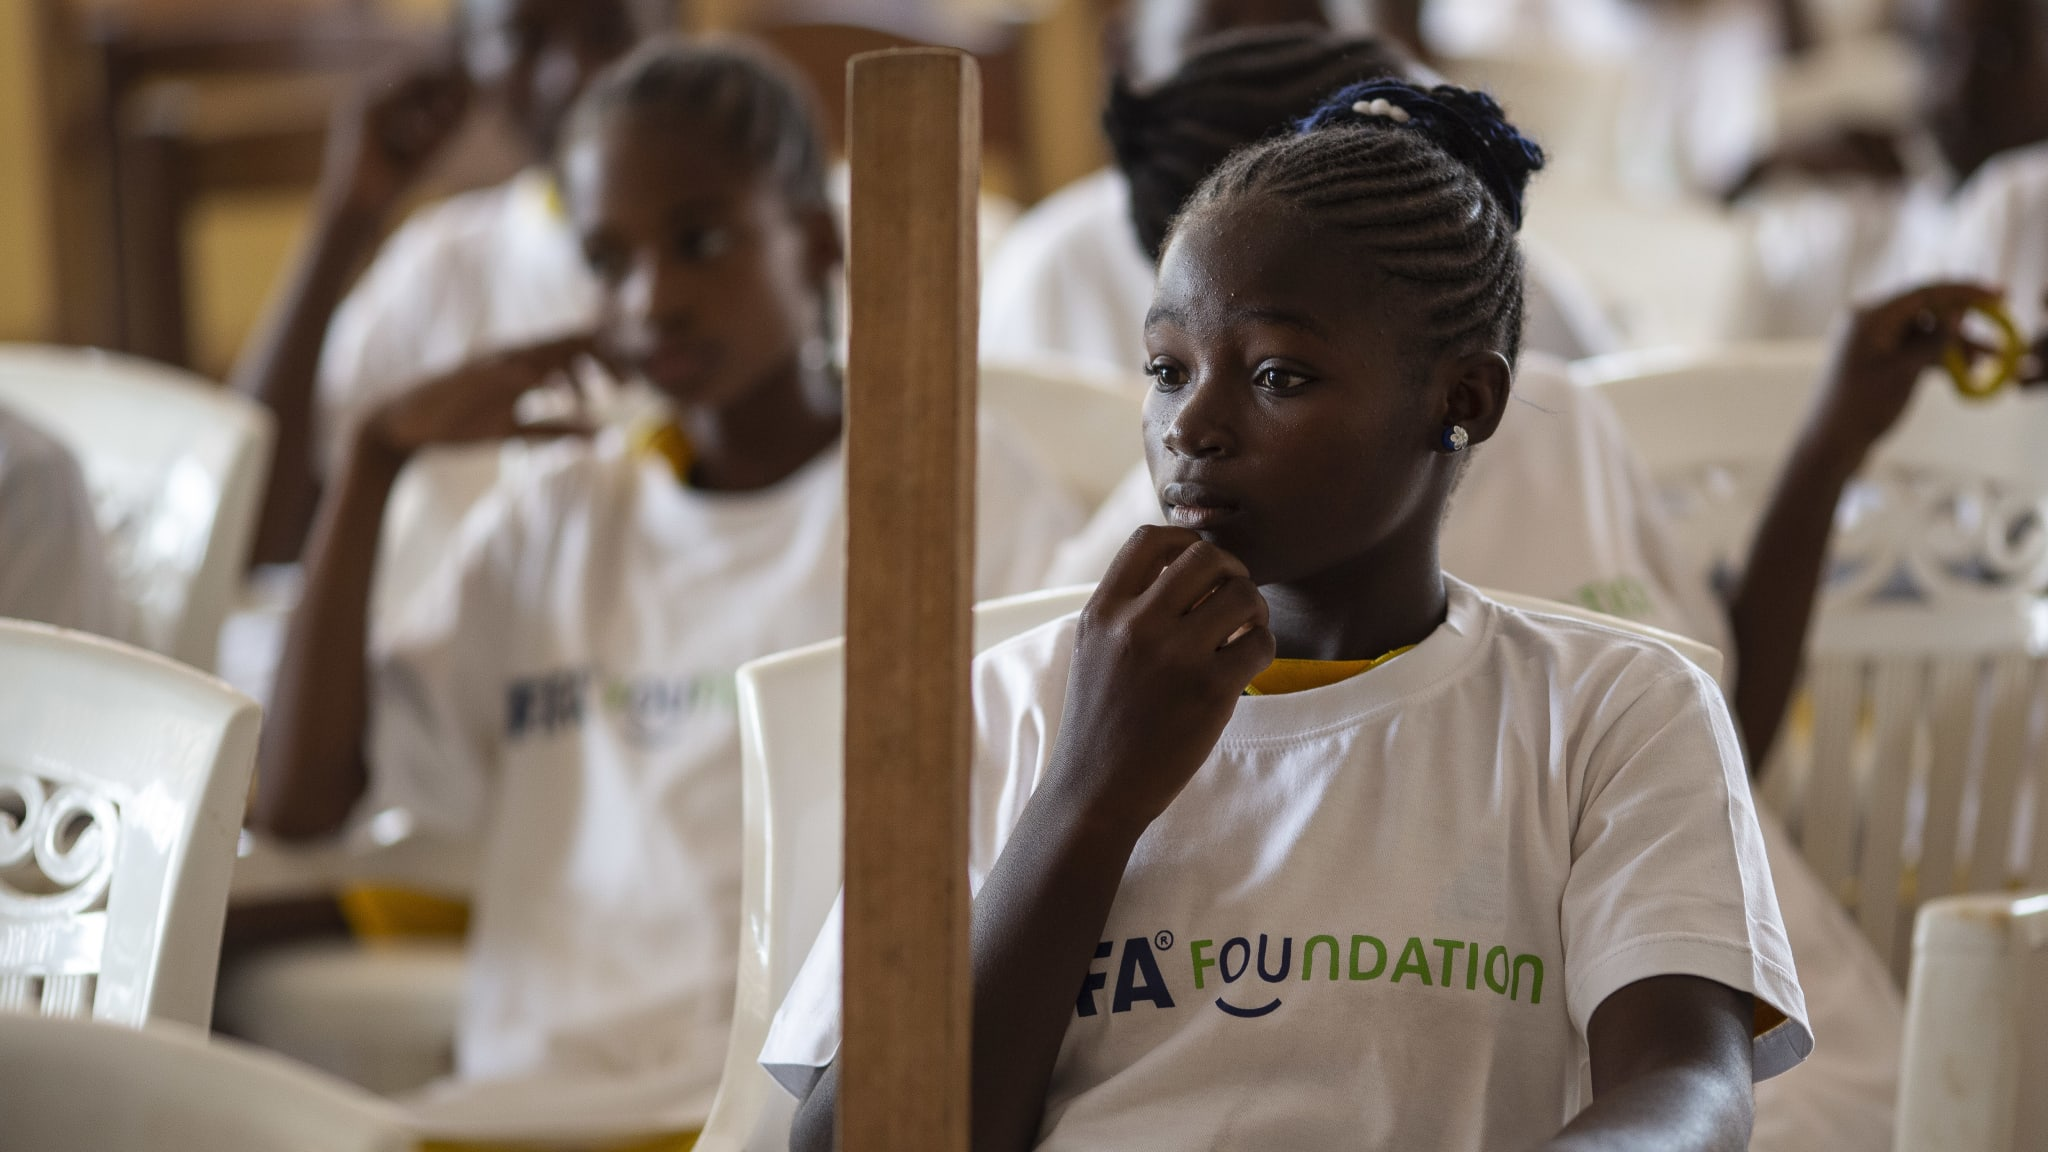 Who We Are - News - FIFA Foundation calls for technology to support children's educational needs